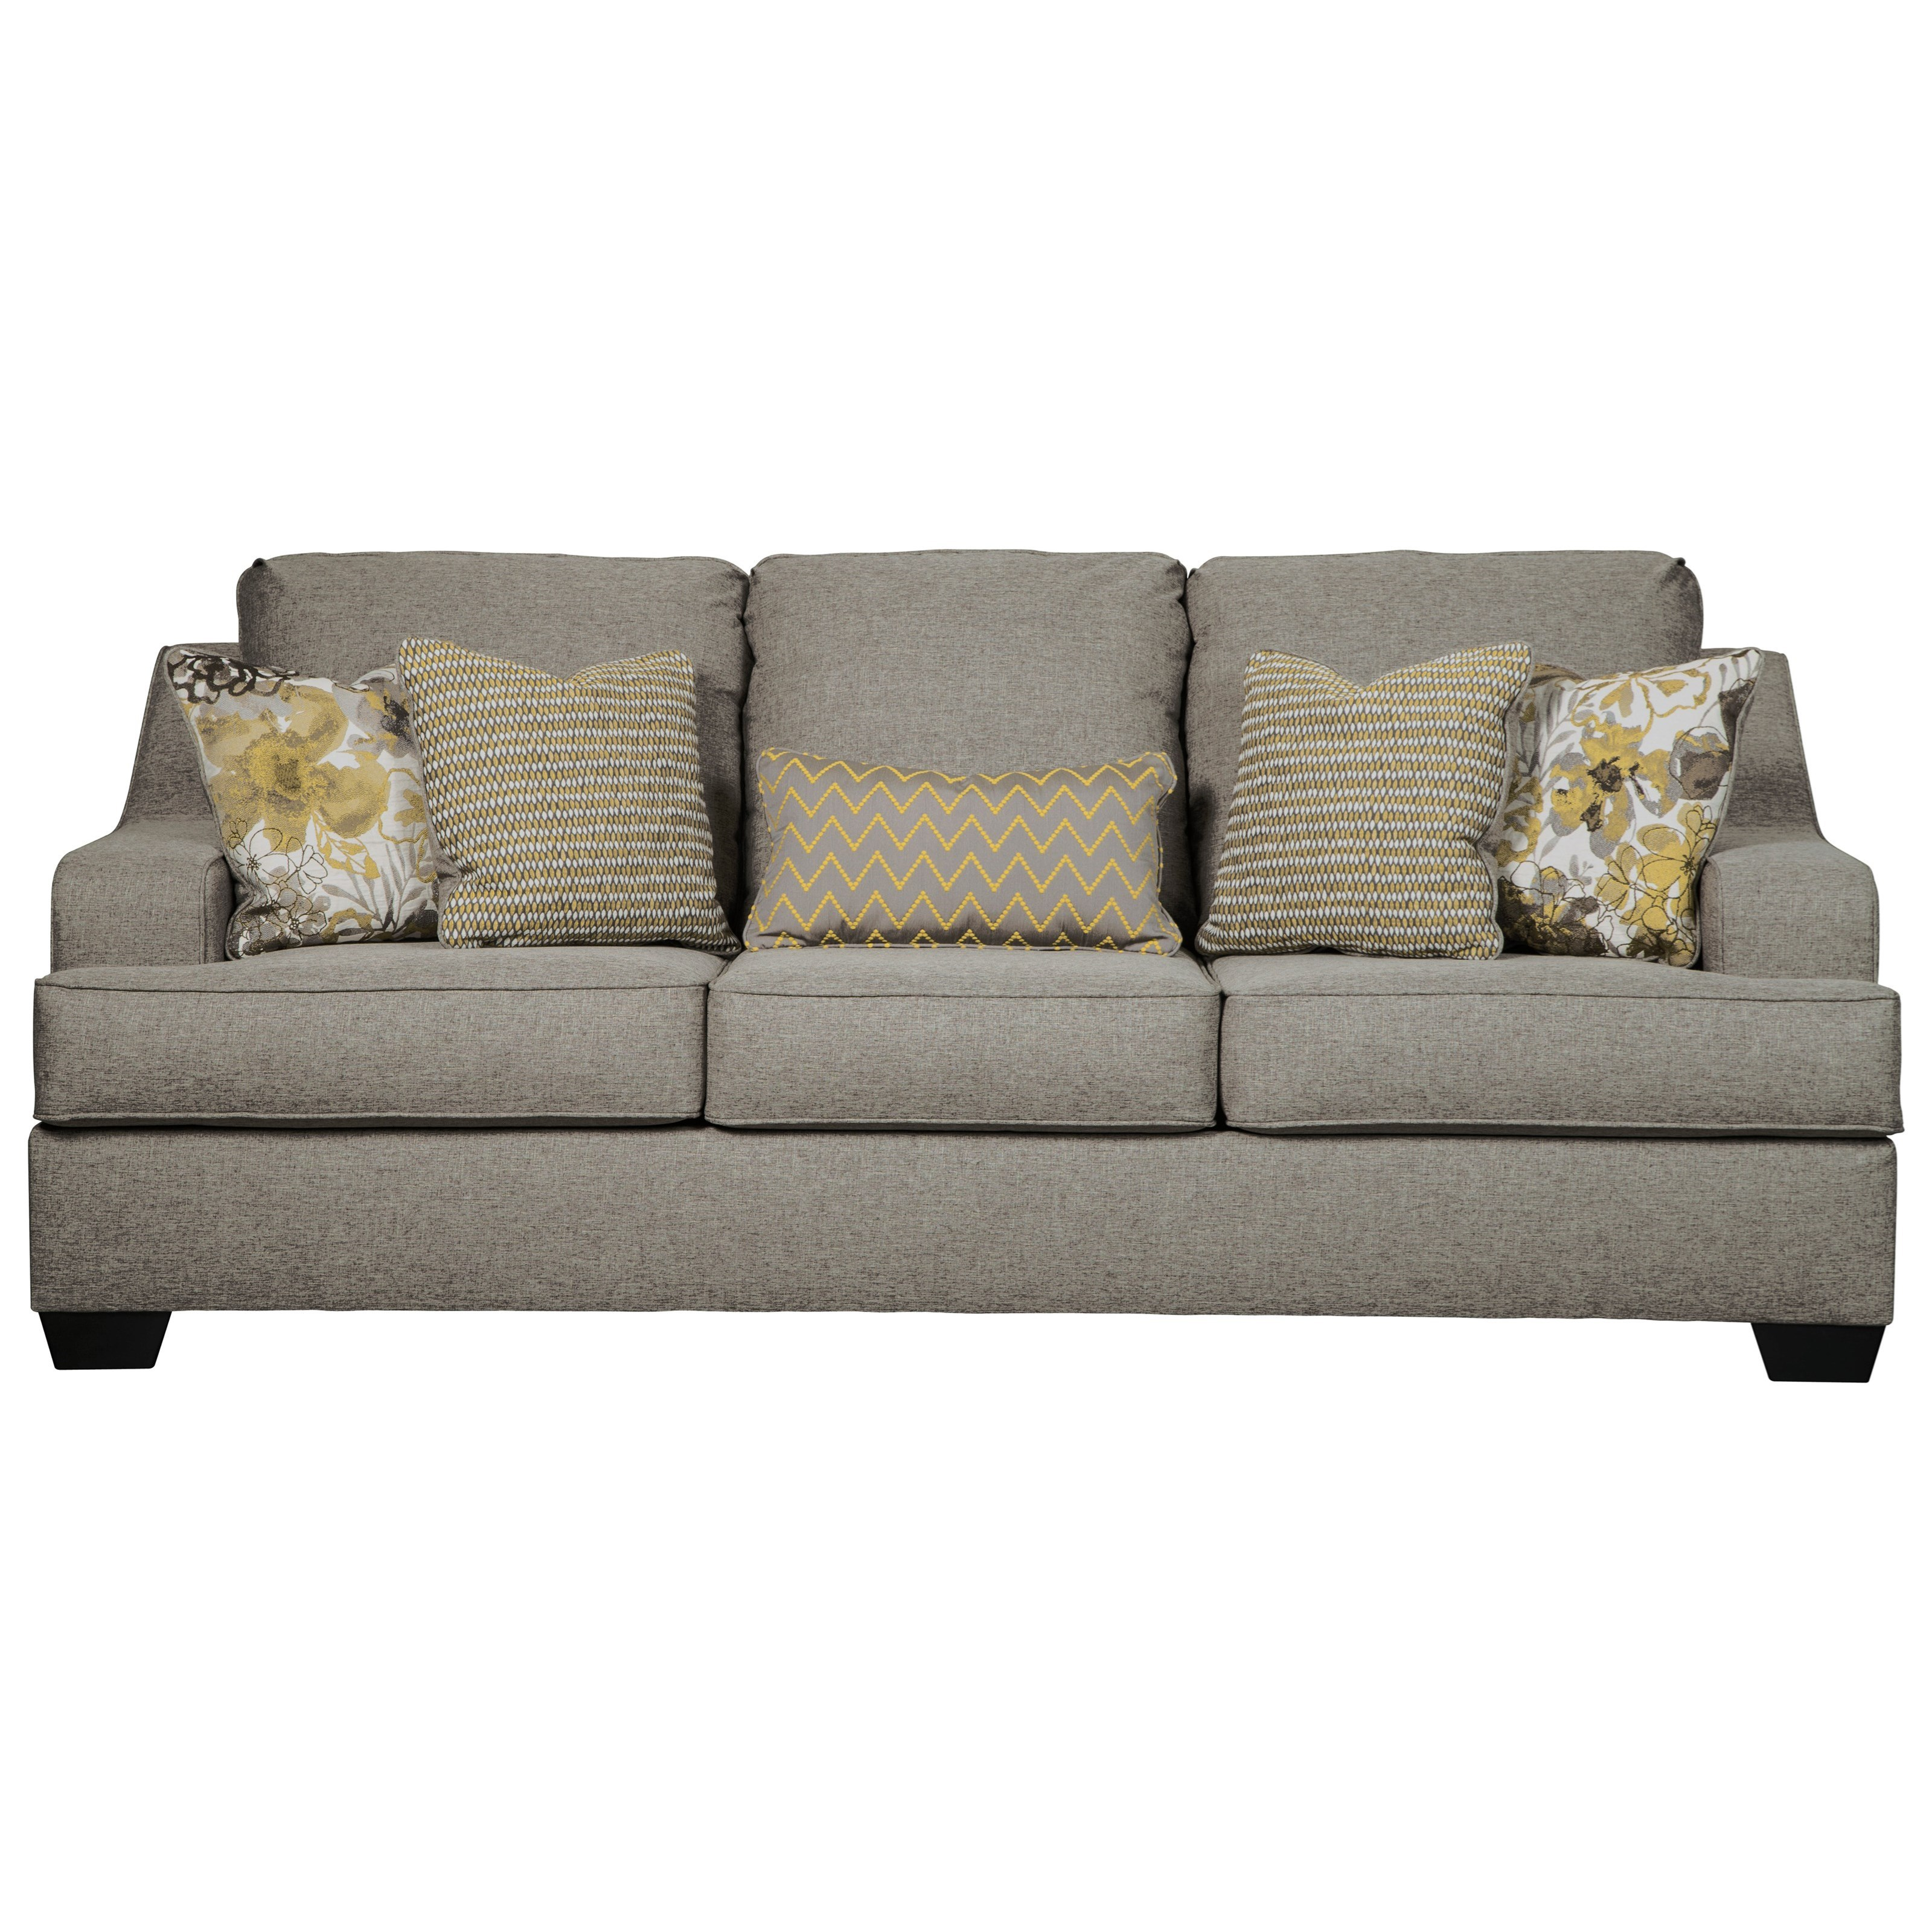 Sofa Bed For Sale In Quezon City: Benchcraft Mandee Queen Sofa Sleeper With Contemporary